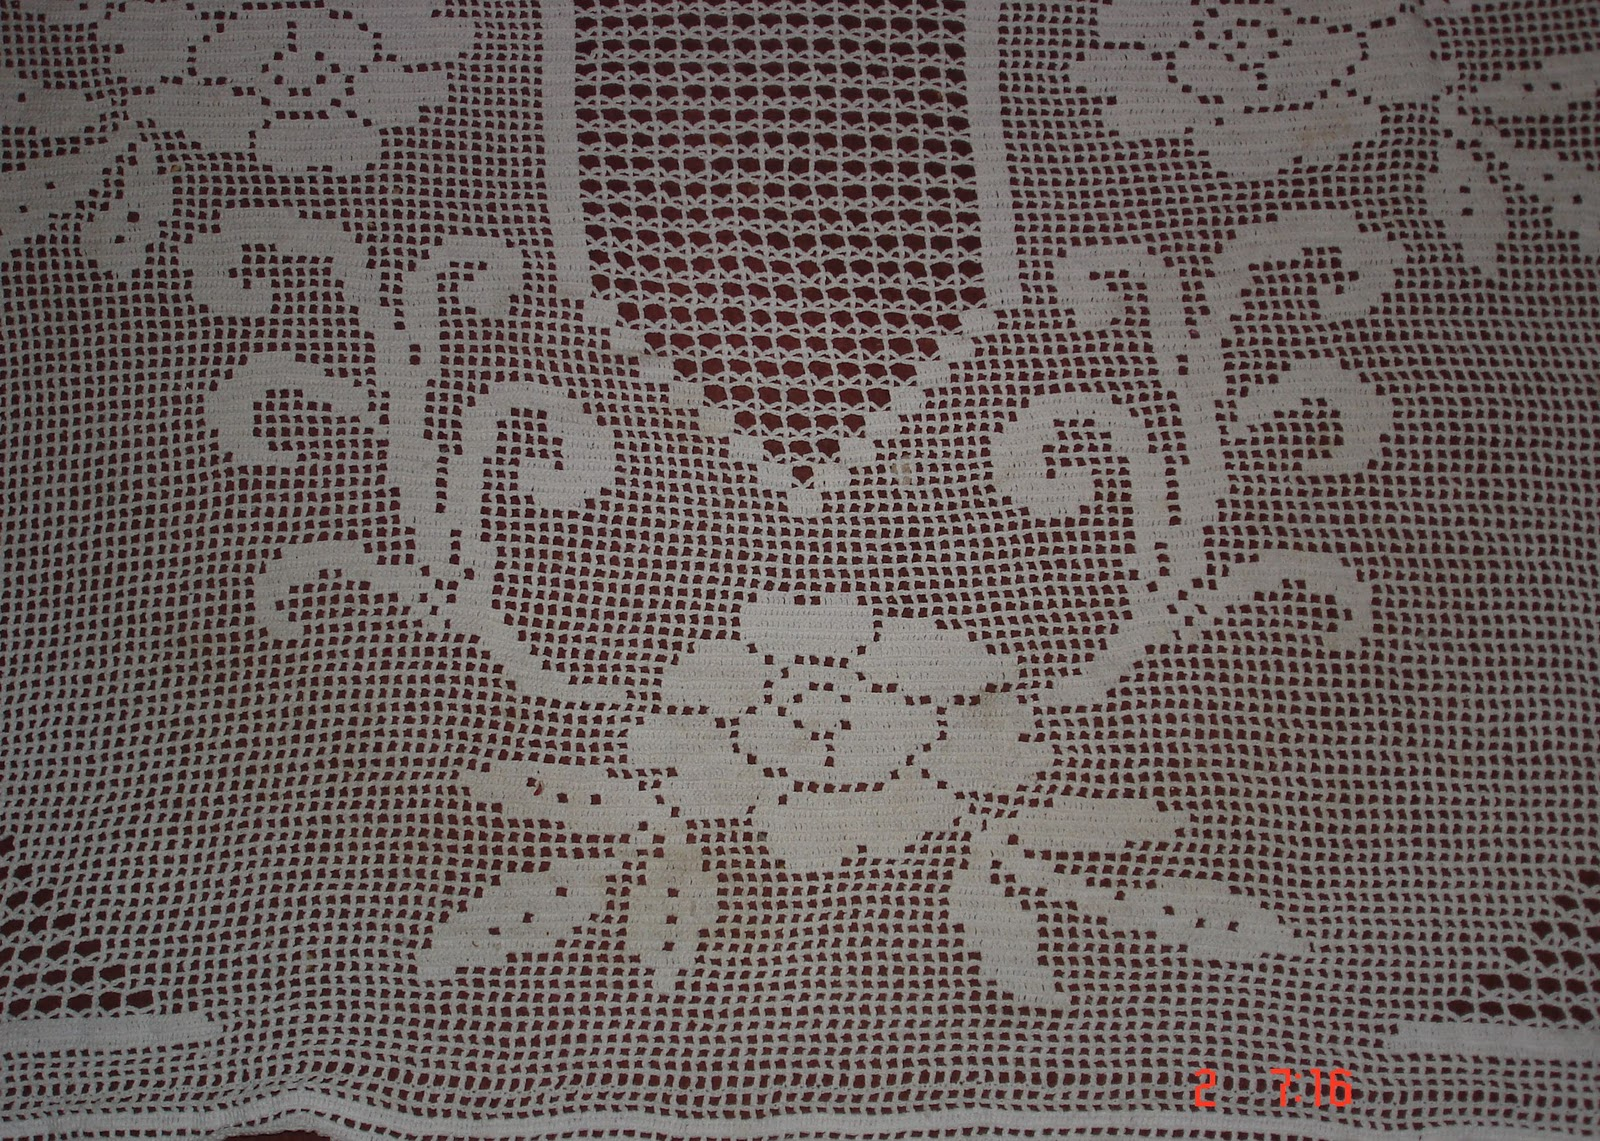 FILET CROCHET ROSE TABLECLOTH PATTERN - Crochet and Knitting Patterns